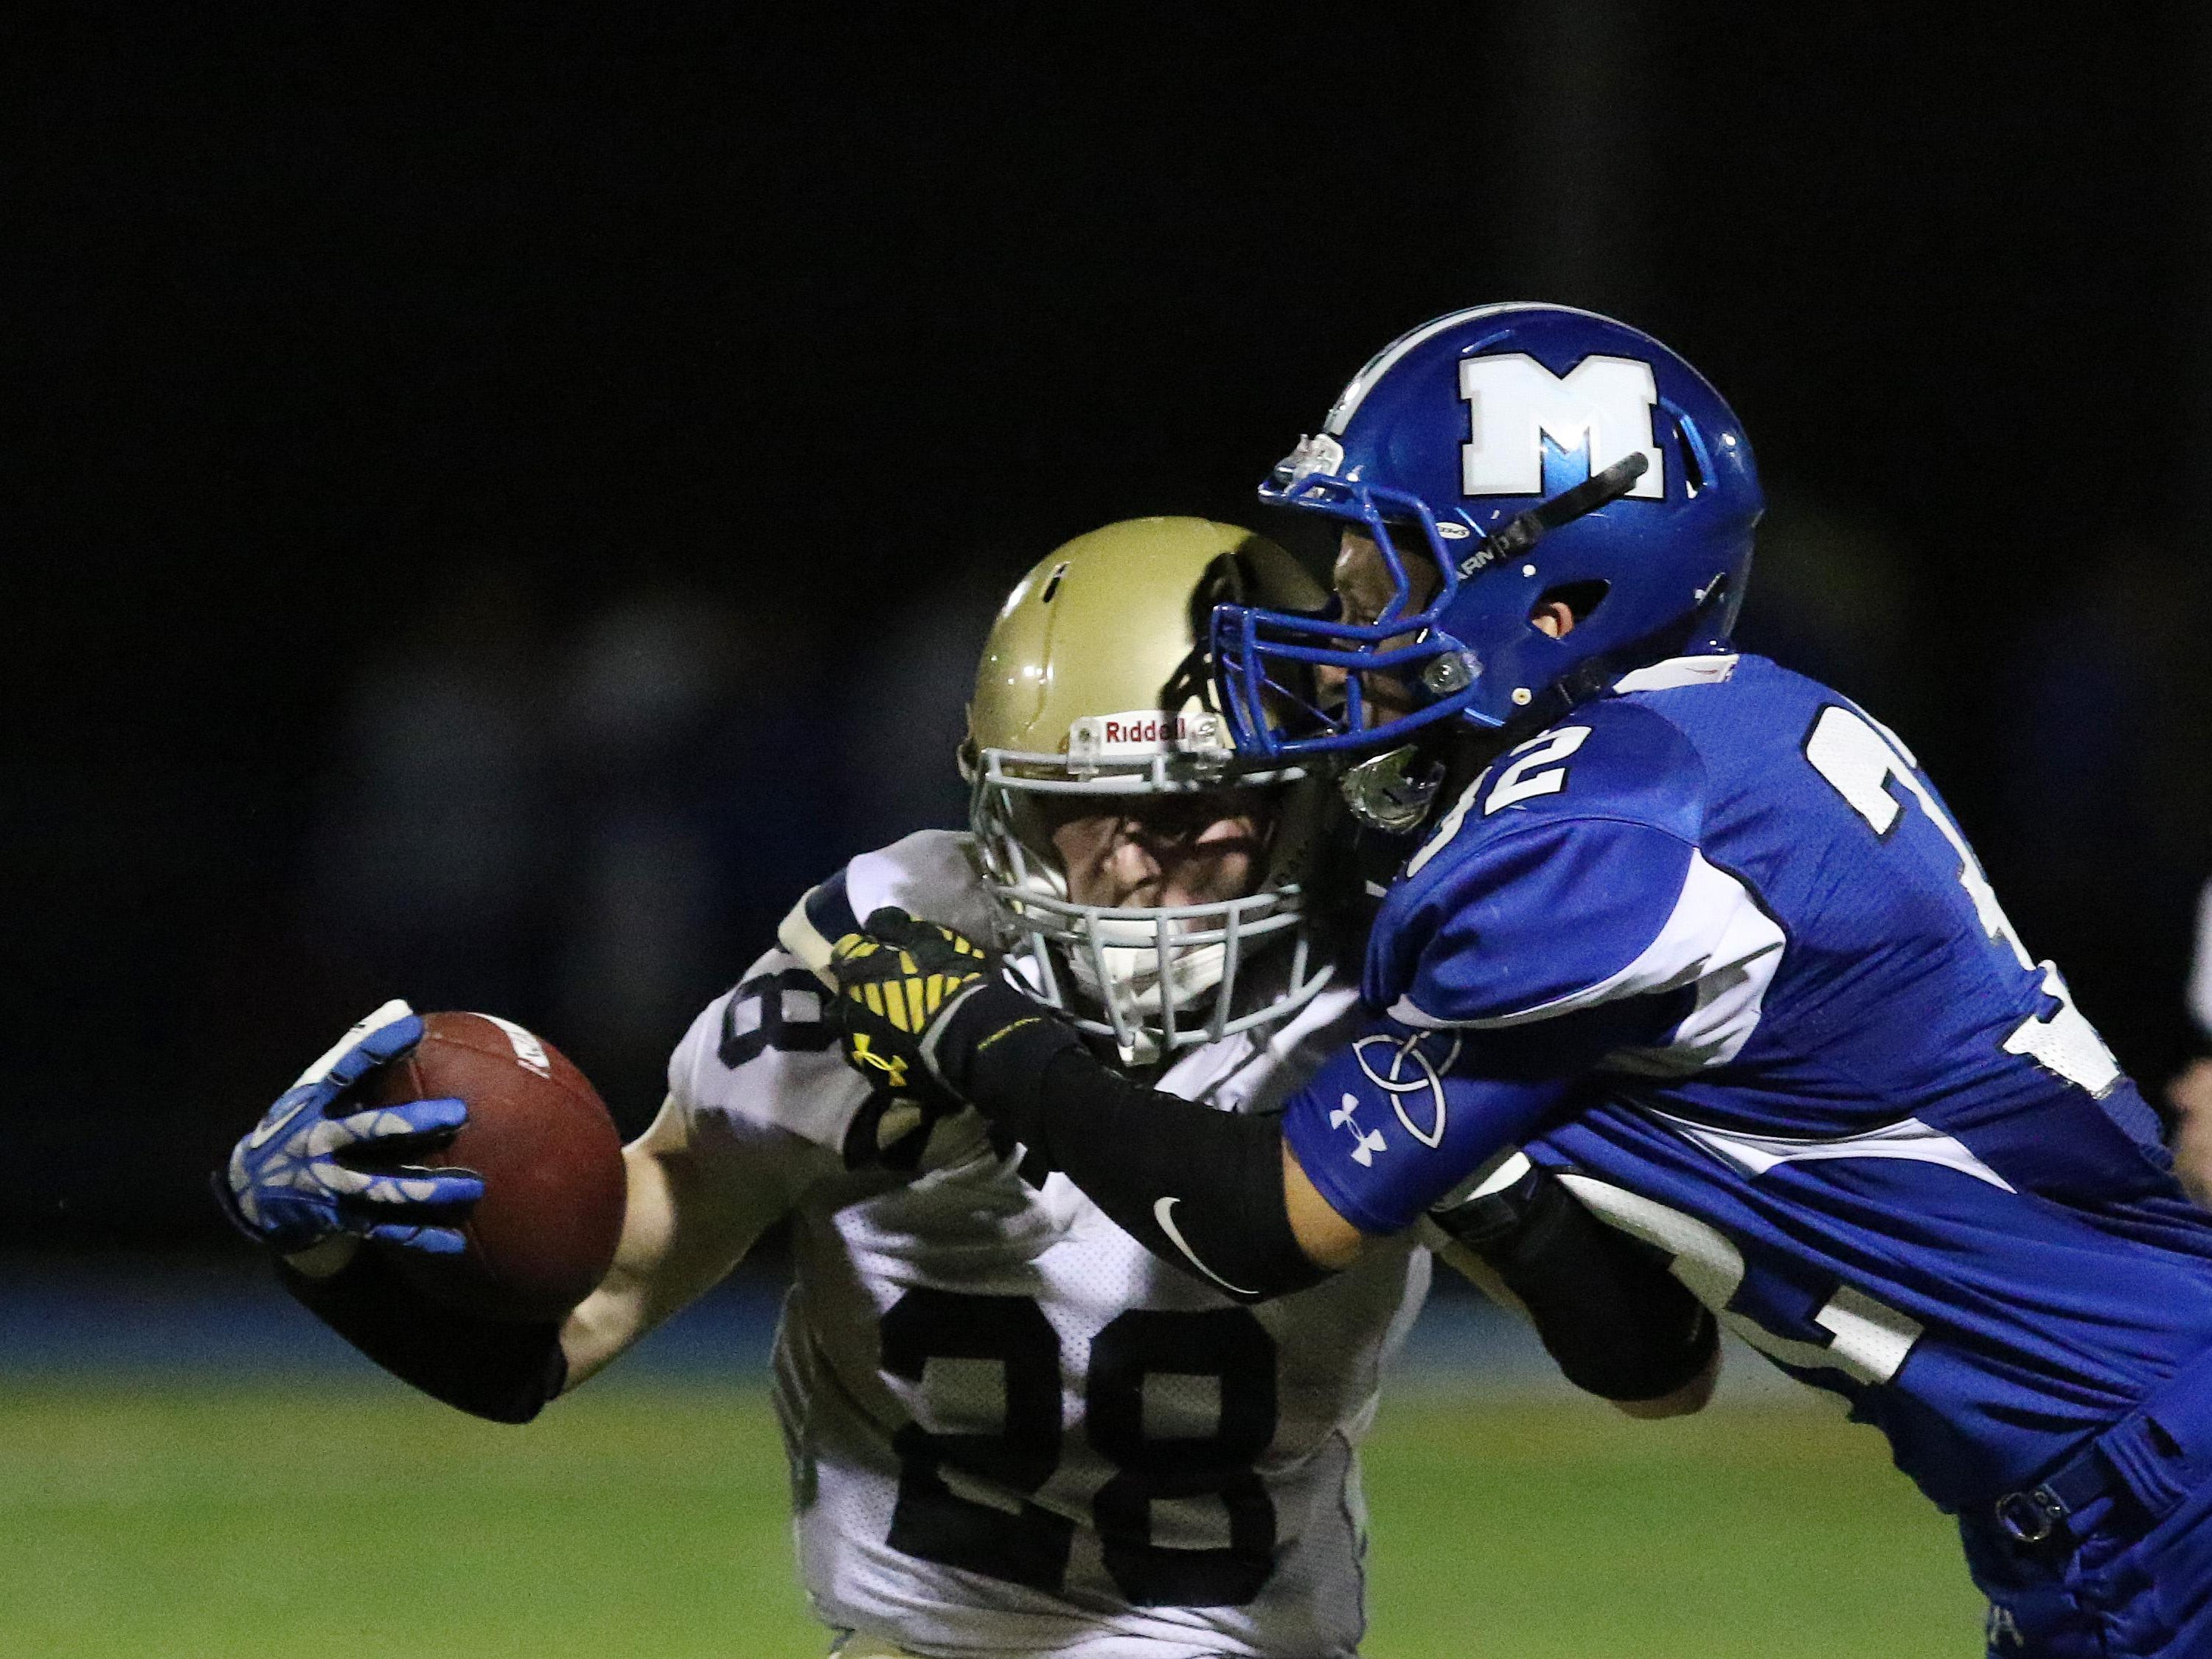 McNary defeats West Albany 31-22 in a Greater Valley Conference game on Friday, Sept. 18, 2015.